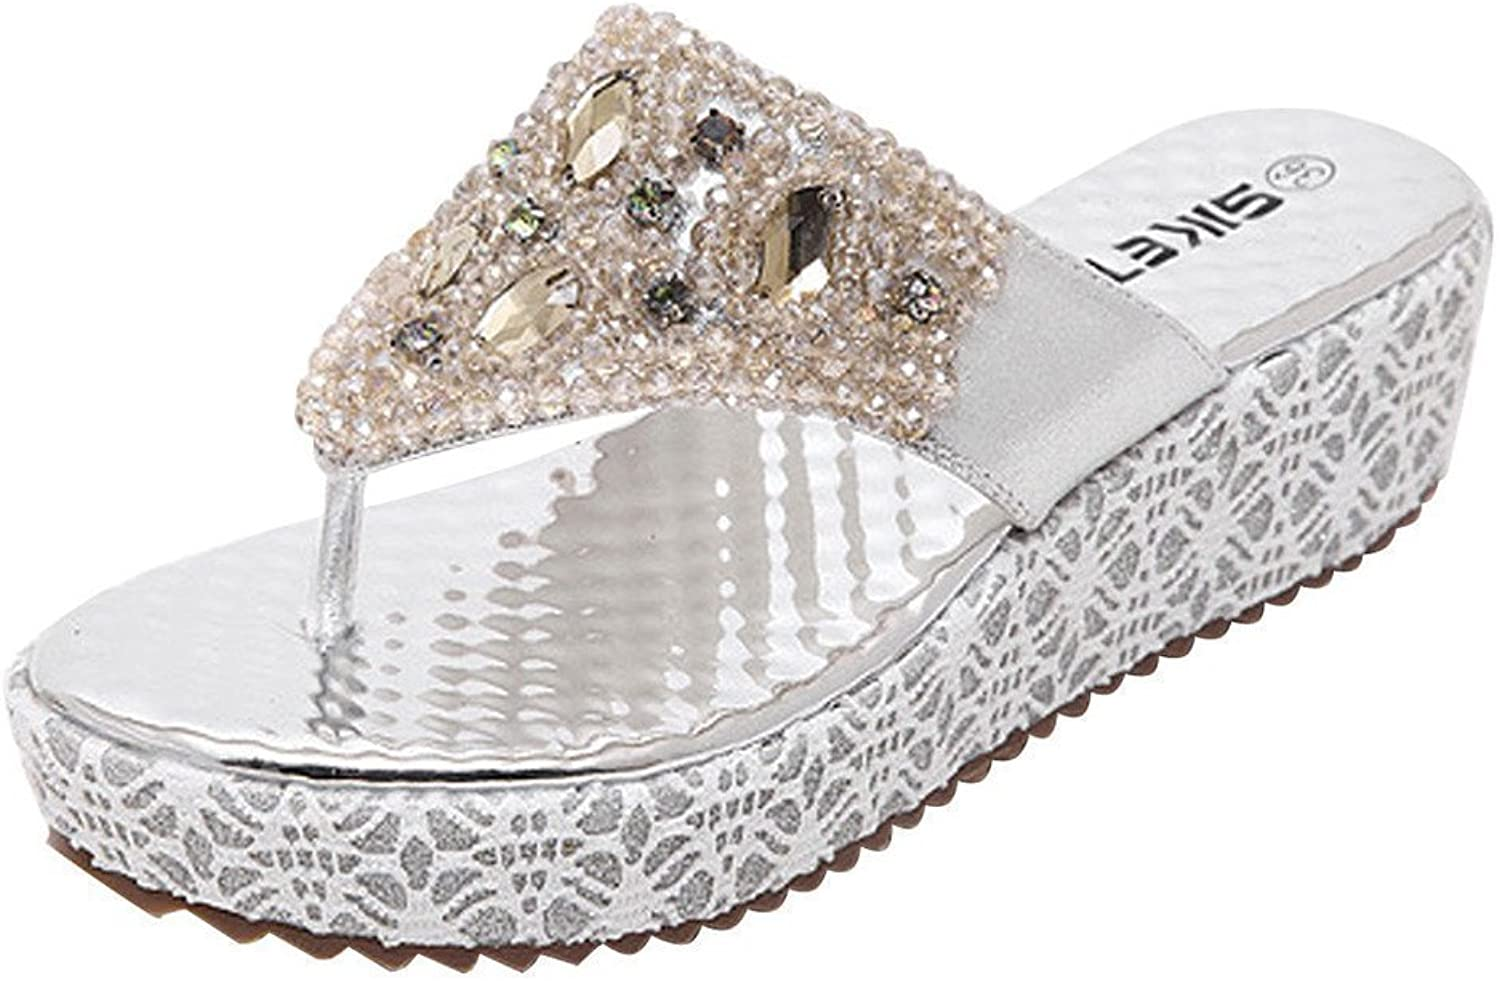 MayBeste Womens's Bohemia Rhinestone Beads Thong Sandals Casual Beach shoes Wedges Flip Flop (Silver 9 B (M) US)